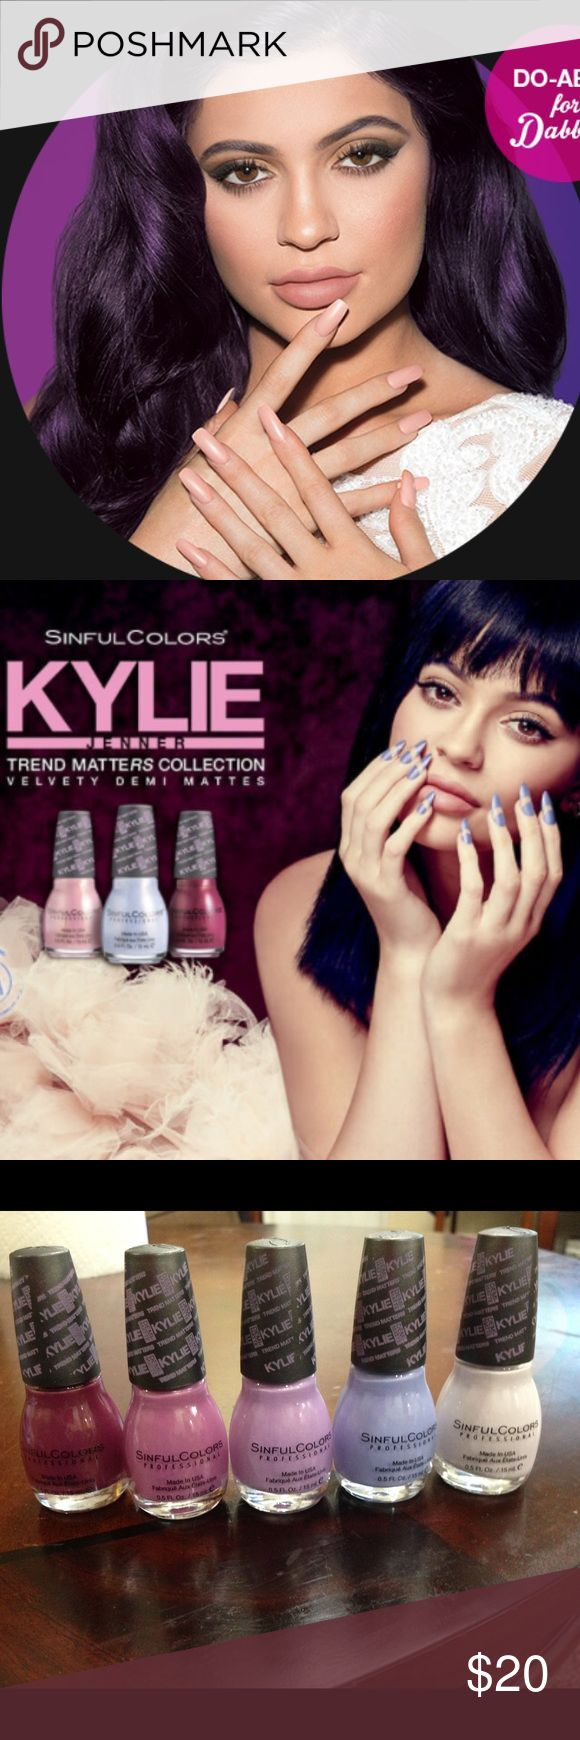 Kylie Cosmetics * Nailpolish Set (5) Nailpolish Set Kylie Makeup and Nailpolish Demi Matte Nailpolish Trend Matters Sinful Colors professional nail polish   * Krushed Velvet * Karma * Silhouette  * Kurtsey  * Kashmere   Colors are listed from left to right from picture taken above   Each nail polish retails $5 on Kylie's Website At target I believe they retail for $4 Kylie Cosmetics Makeup Lip Balm & Gloss